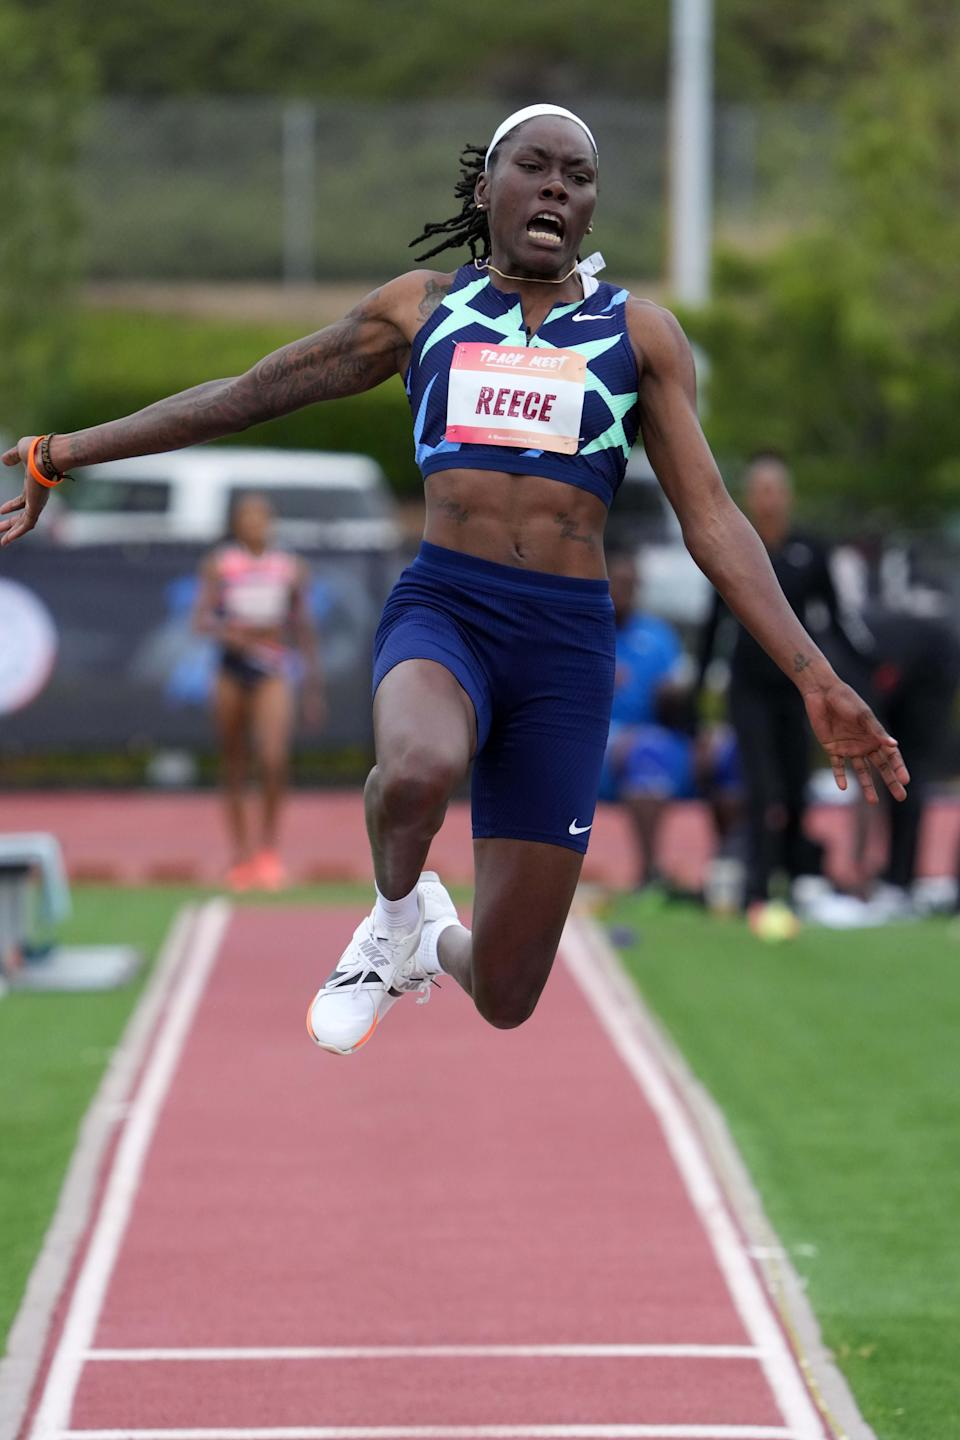 Brittney Reese, who qualified for her fourth Olympics in June, won gold in the long jump at the 2012 London Olympics, then took the silver at the Rio Games.